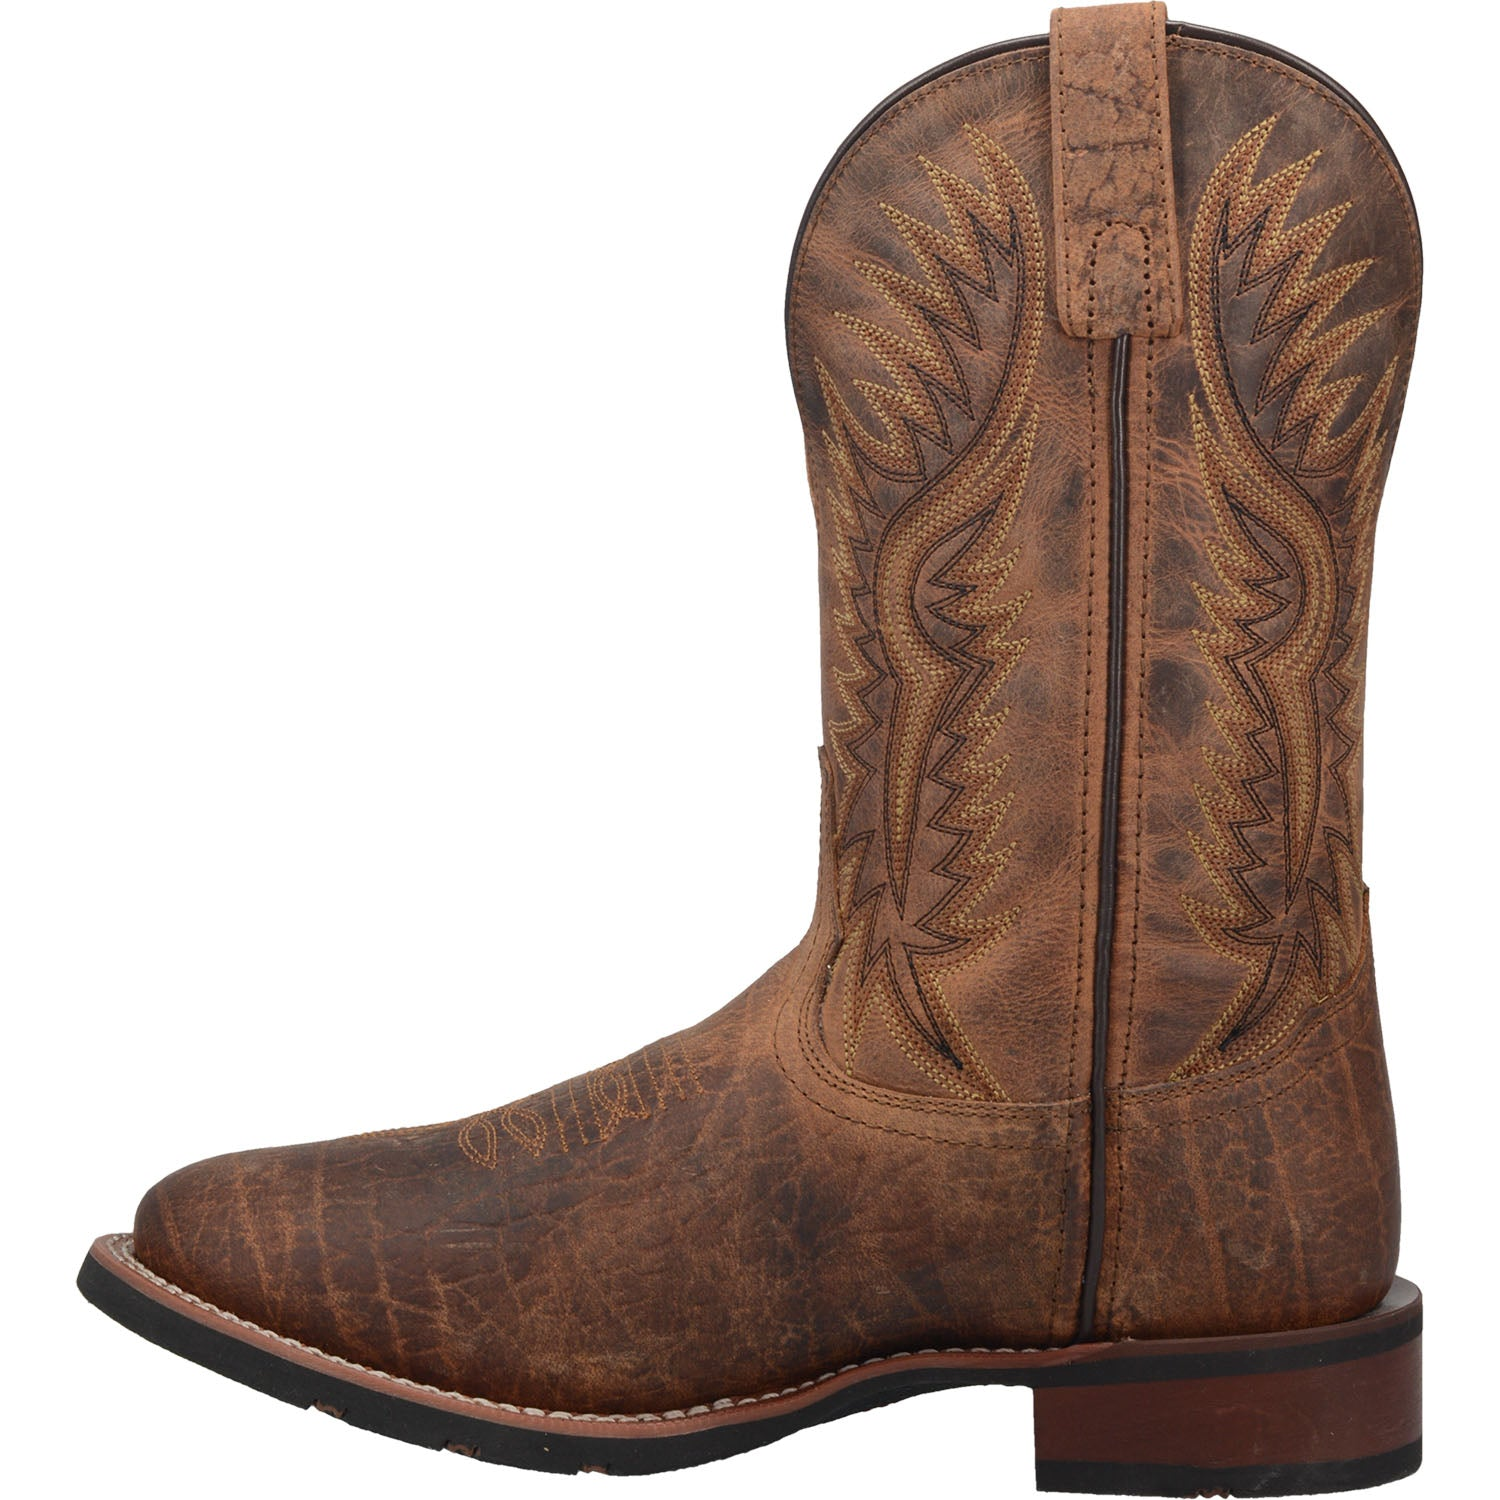 PINETOP LEATHER BOOT 15884489818154